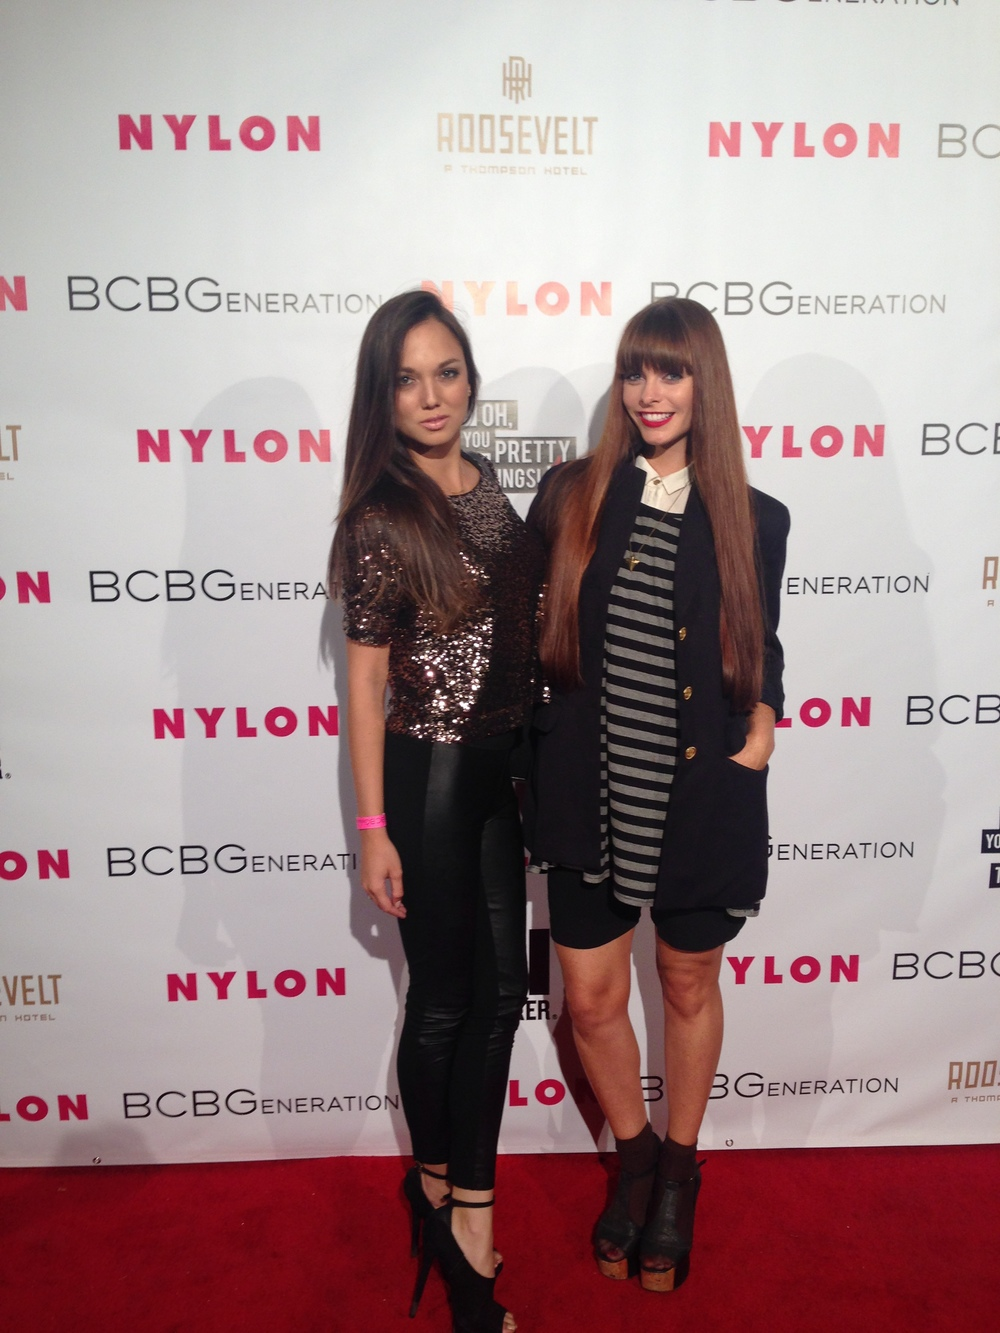 The Nylon Magazine party in West Hollywood